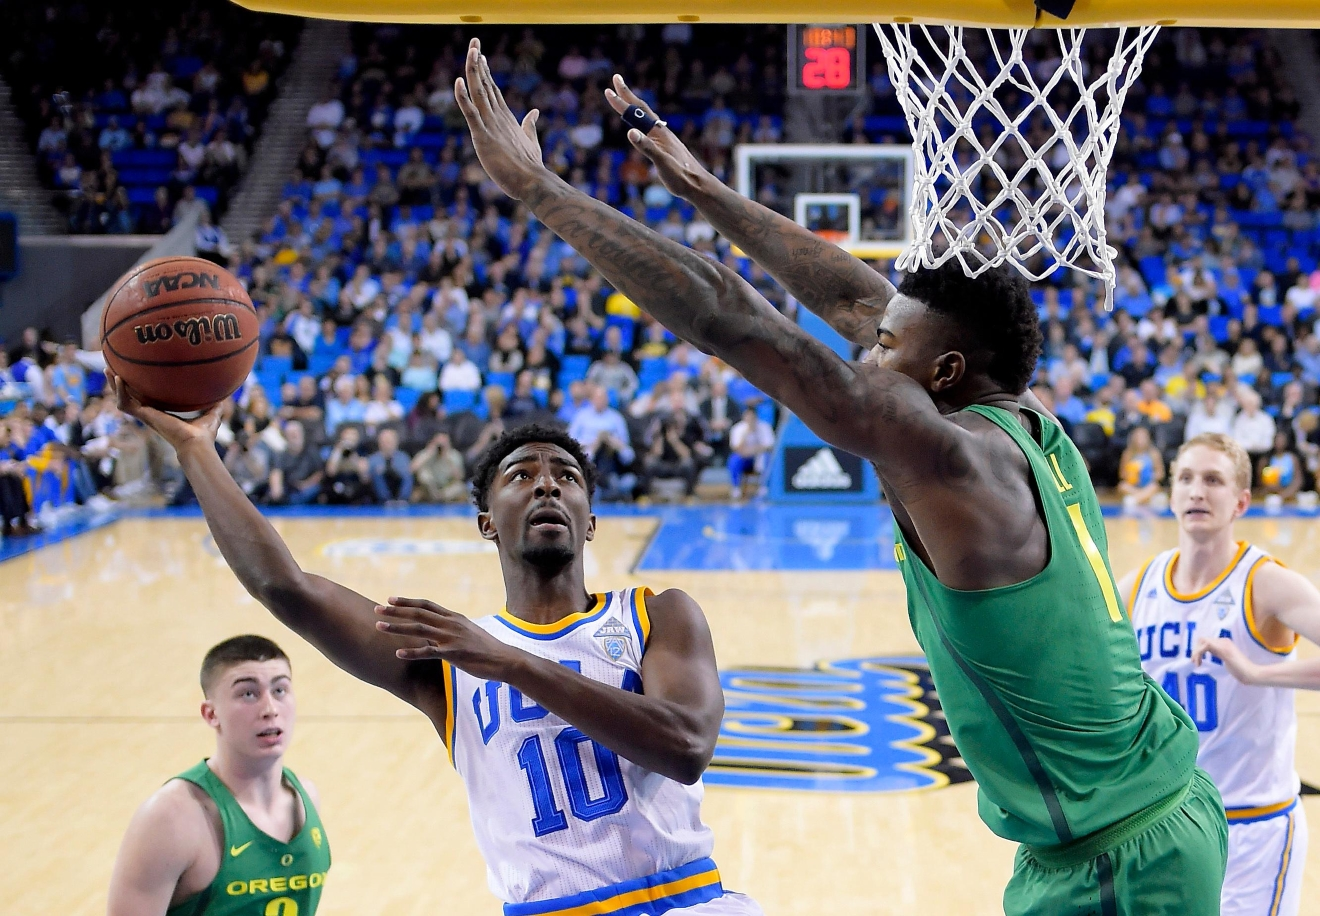 UCLA guard Isaac Hamilton, second from left, shoots as Oregon forward Jordan Bell defends during the first half of an NCAA college basketball game, Thursday, Feb. 9, 2017, in Los Angeles. (AP Photo/Mark J. Terrill)